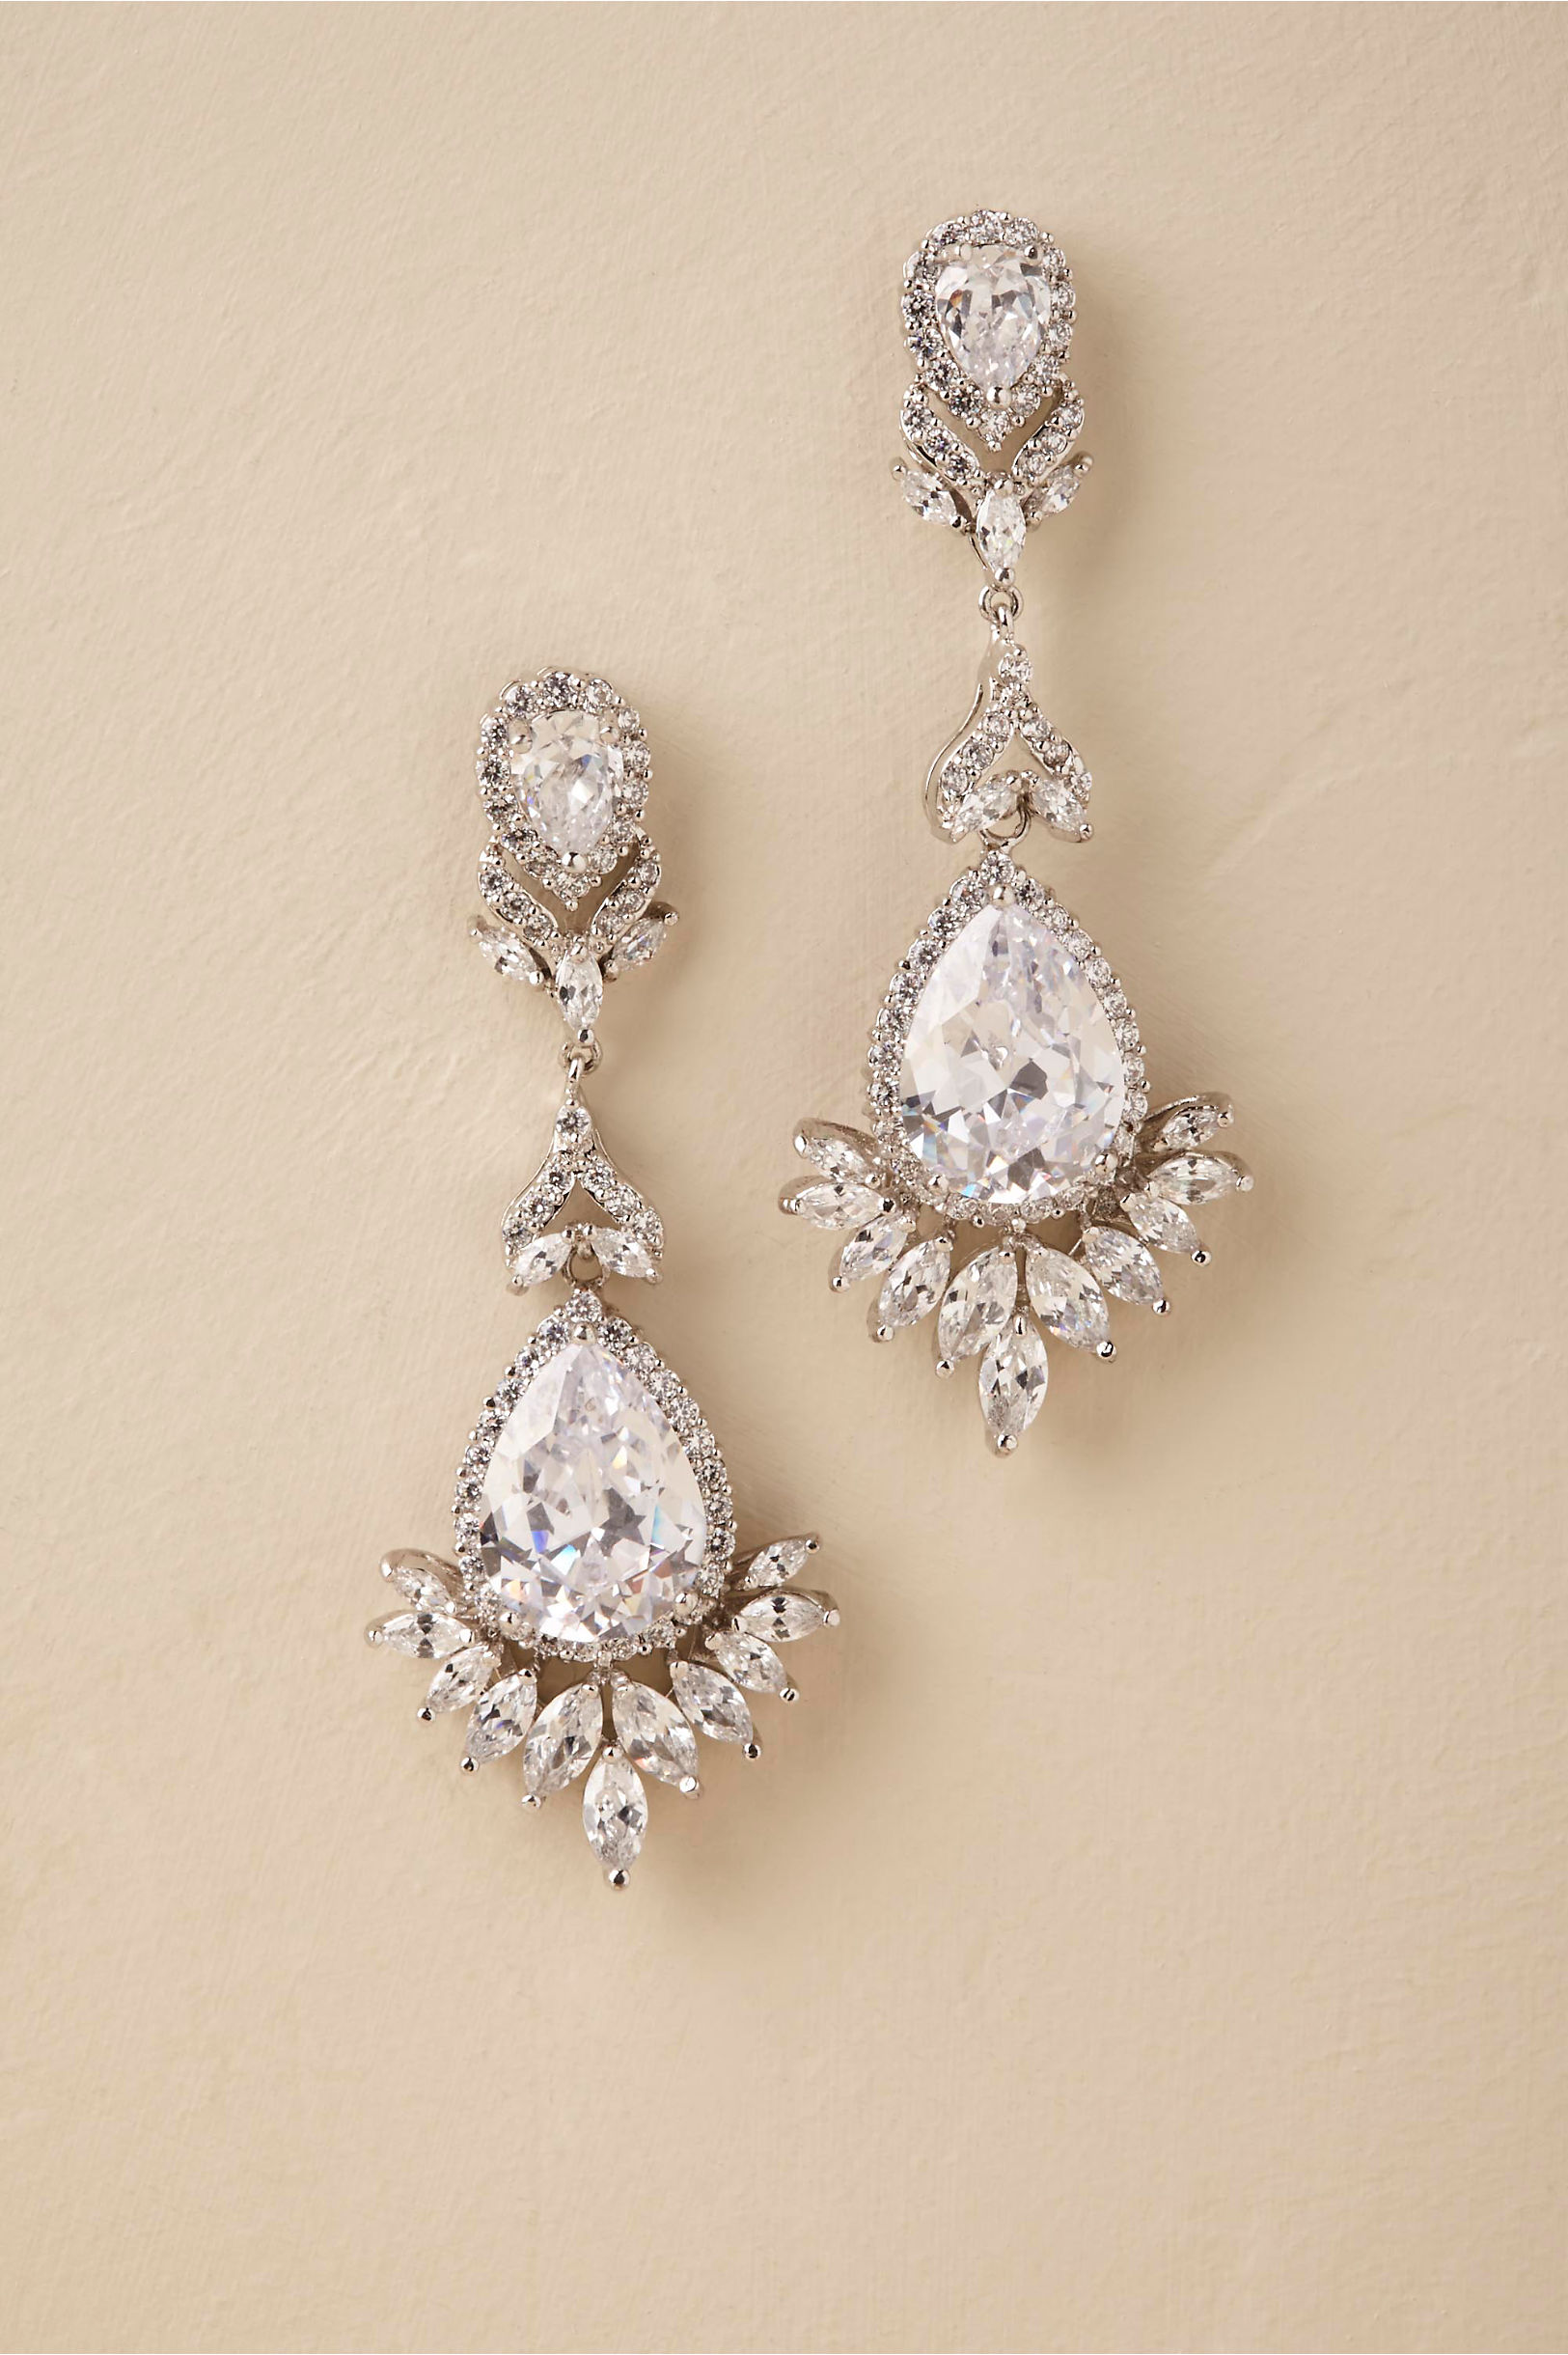 jewellery butta buttas s product chandelier baalis earrings img emaciti